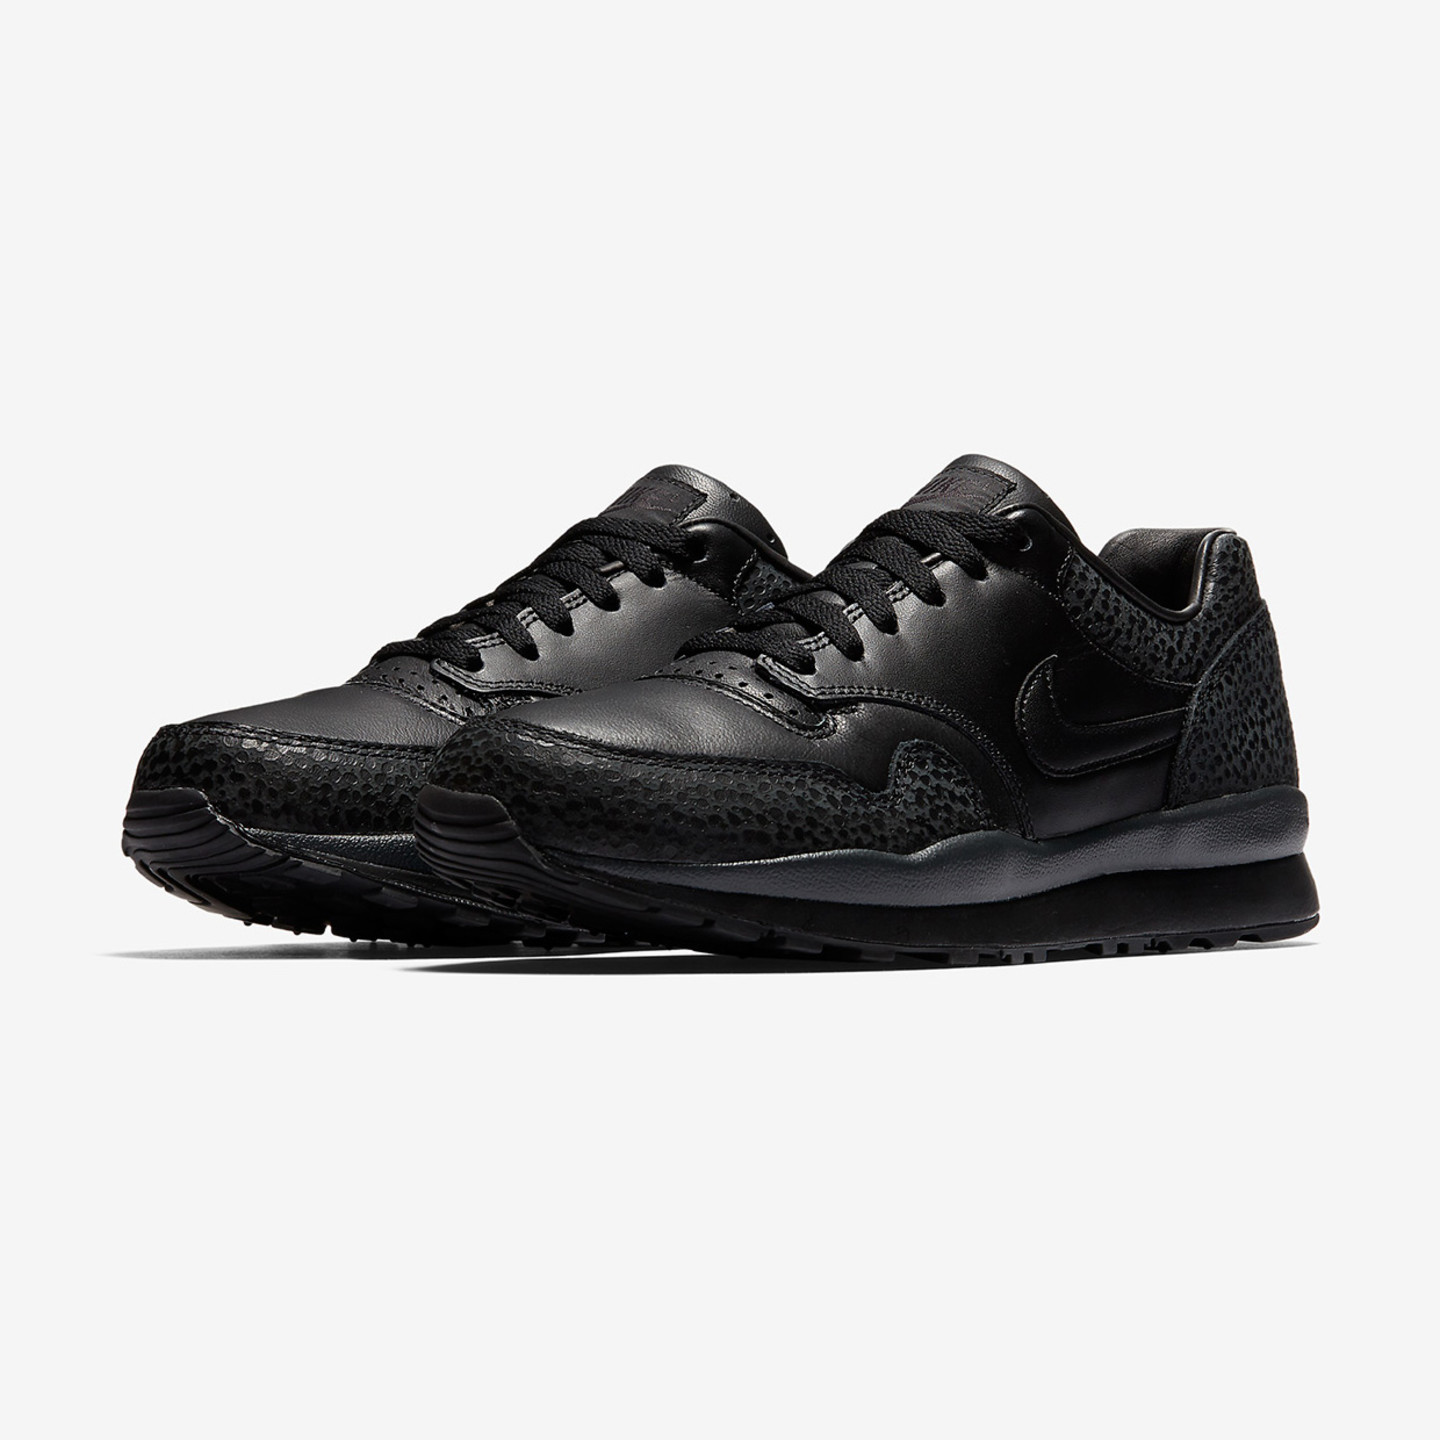 Nike Air Safari QS Black / Anthracite AO3295-002